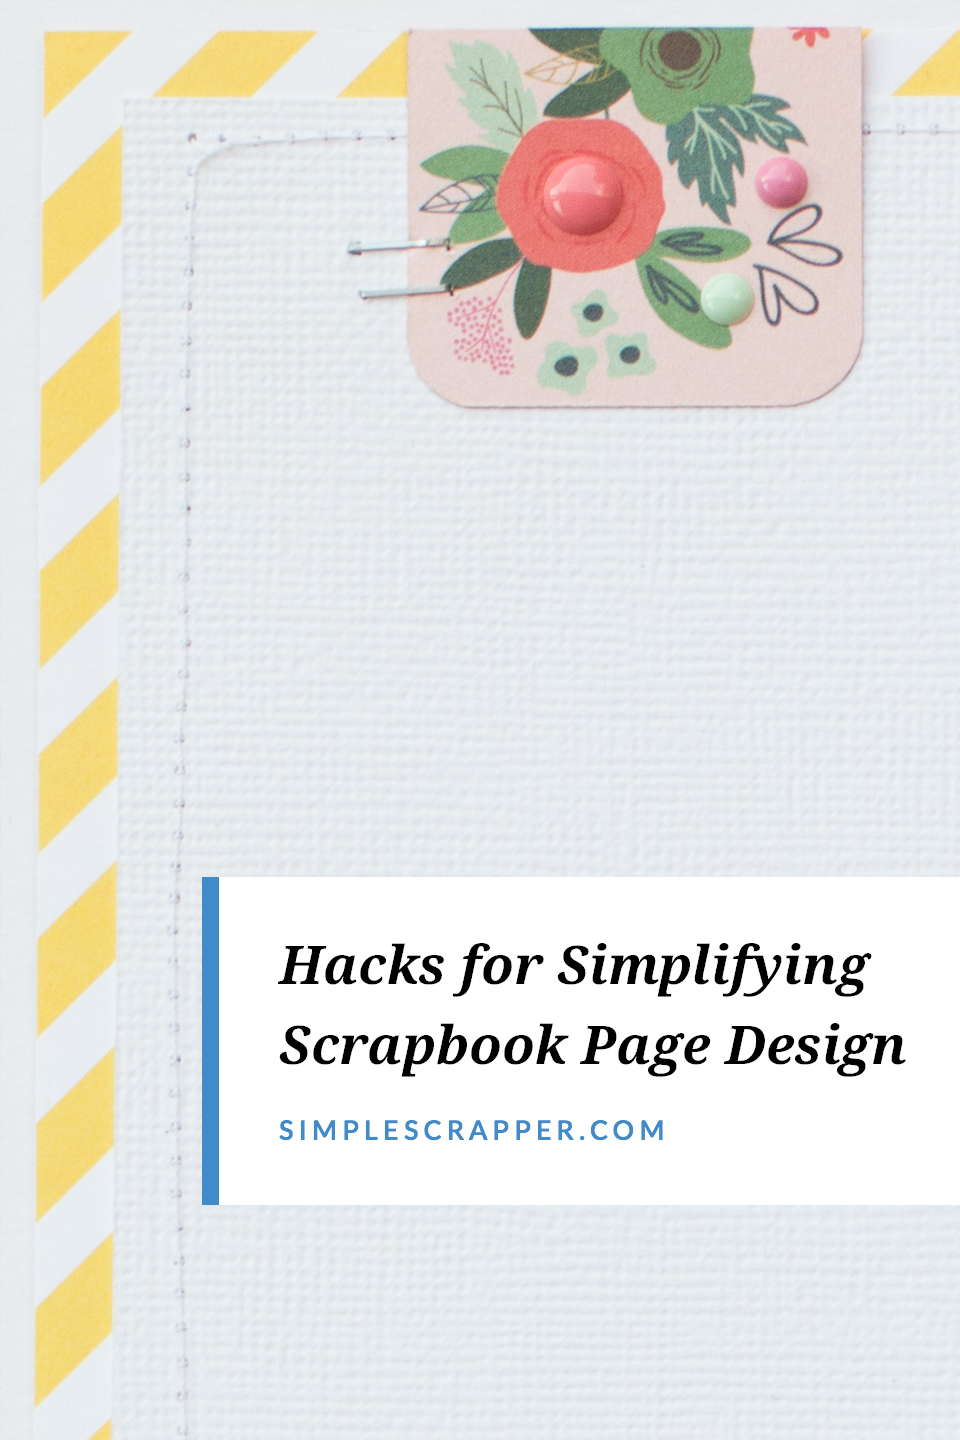 Discover our very best tips and shortcuts for taking the frustration out of scrapbook page design in this video blog post.